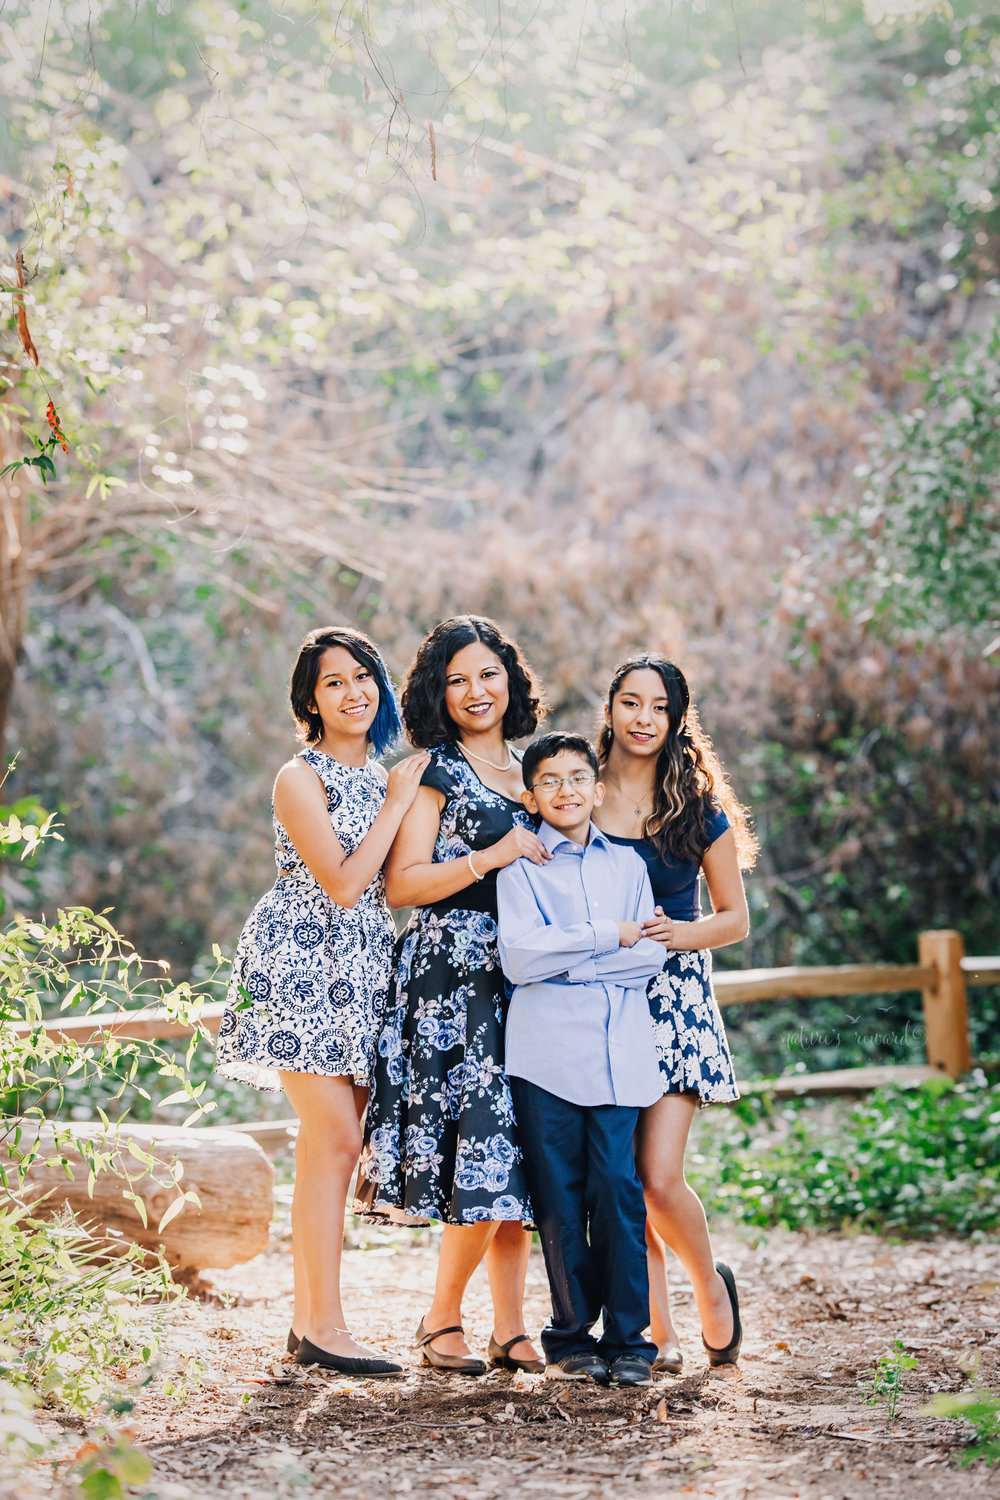 Just mom and us wearing blues and blue florals dresses in this gorgeous family photography portrait by Nature's Reward Photography.